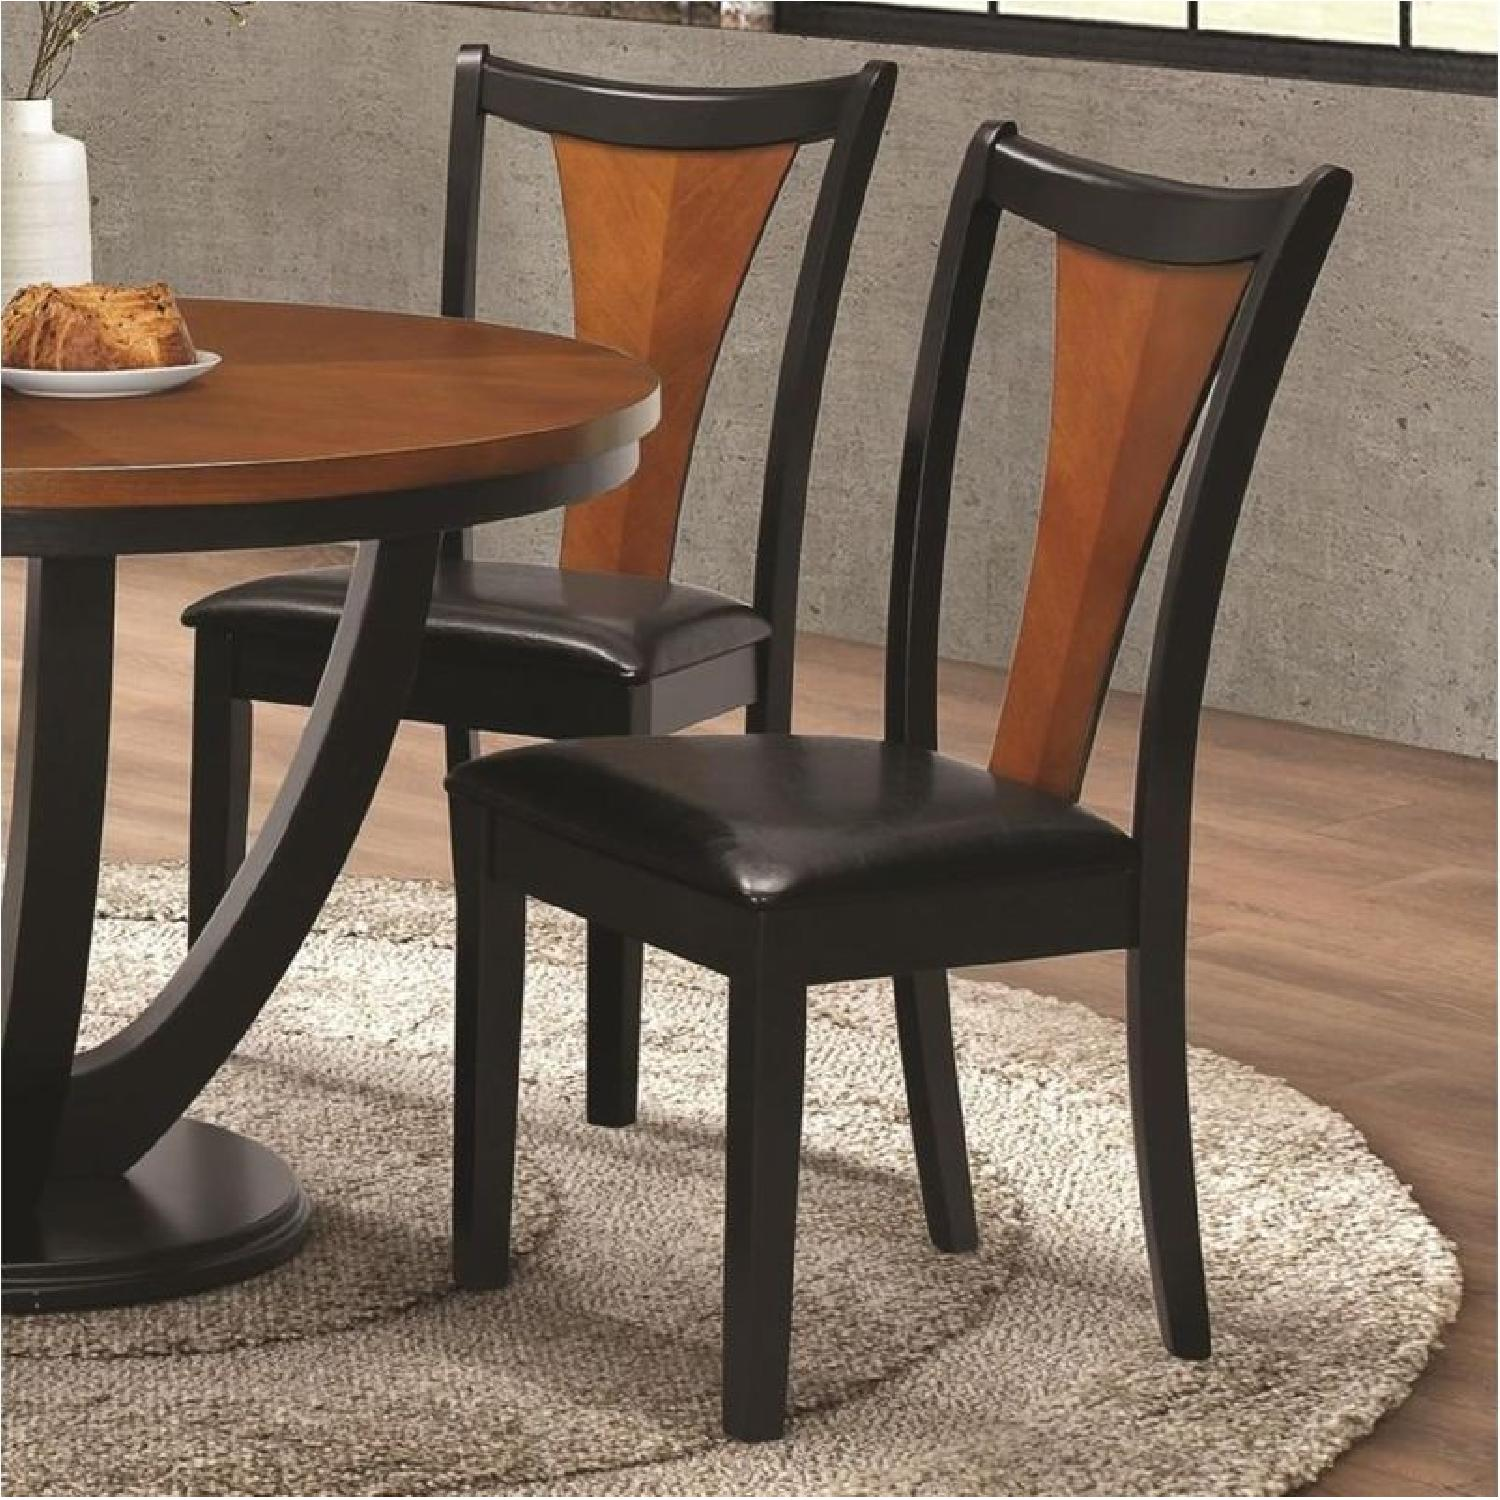 Bohemian Style Round Dining Table w/ Hand-Hammered Iron Top - image-19